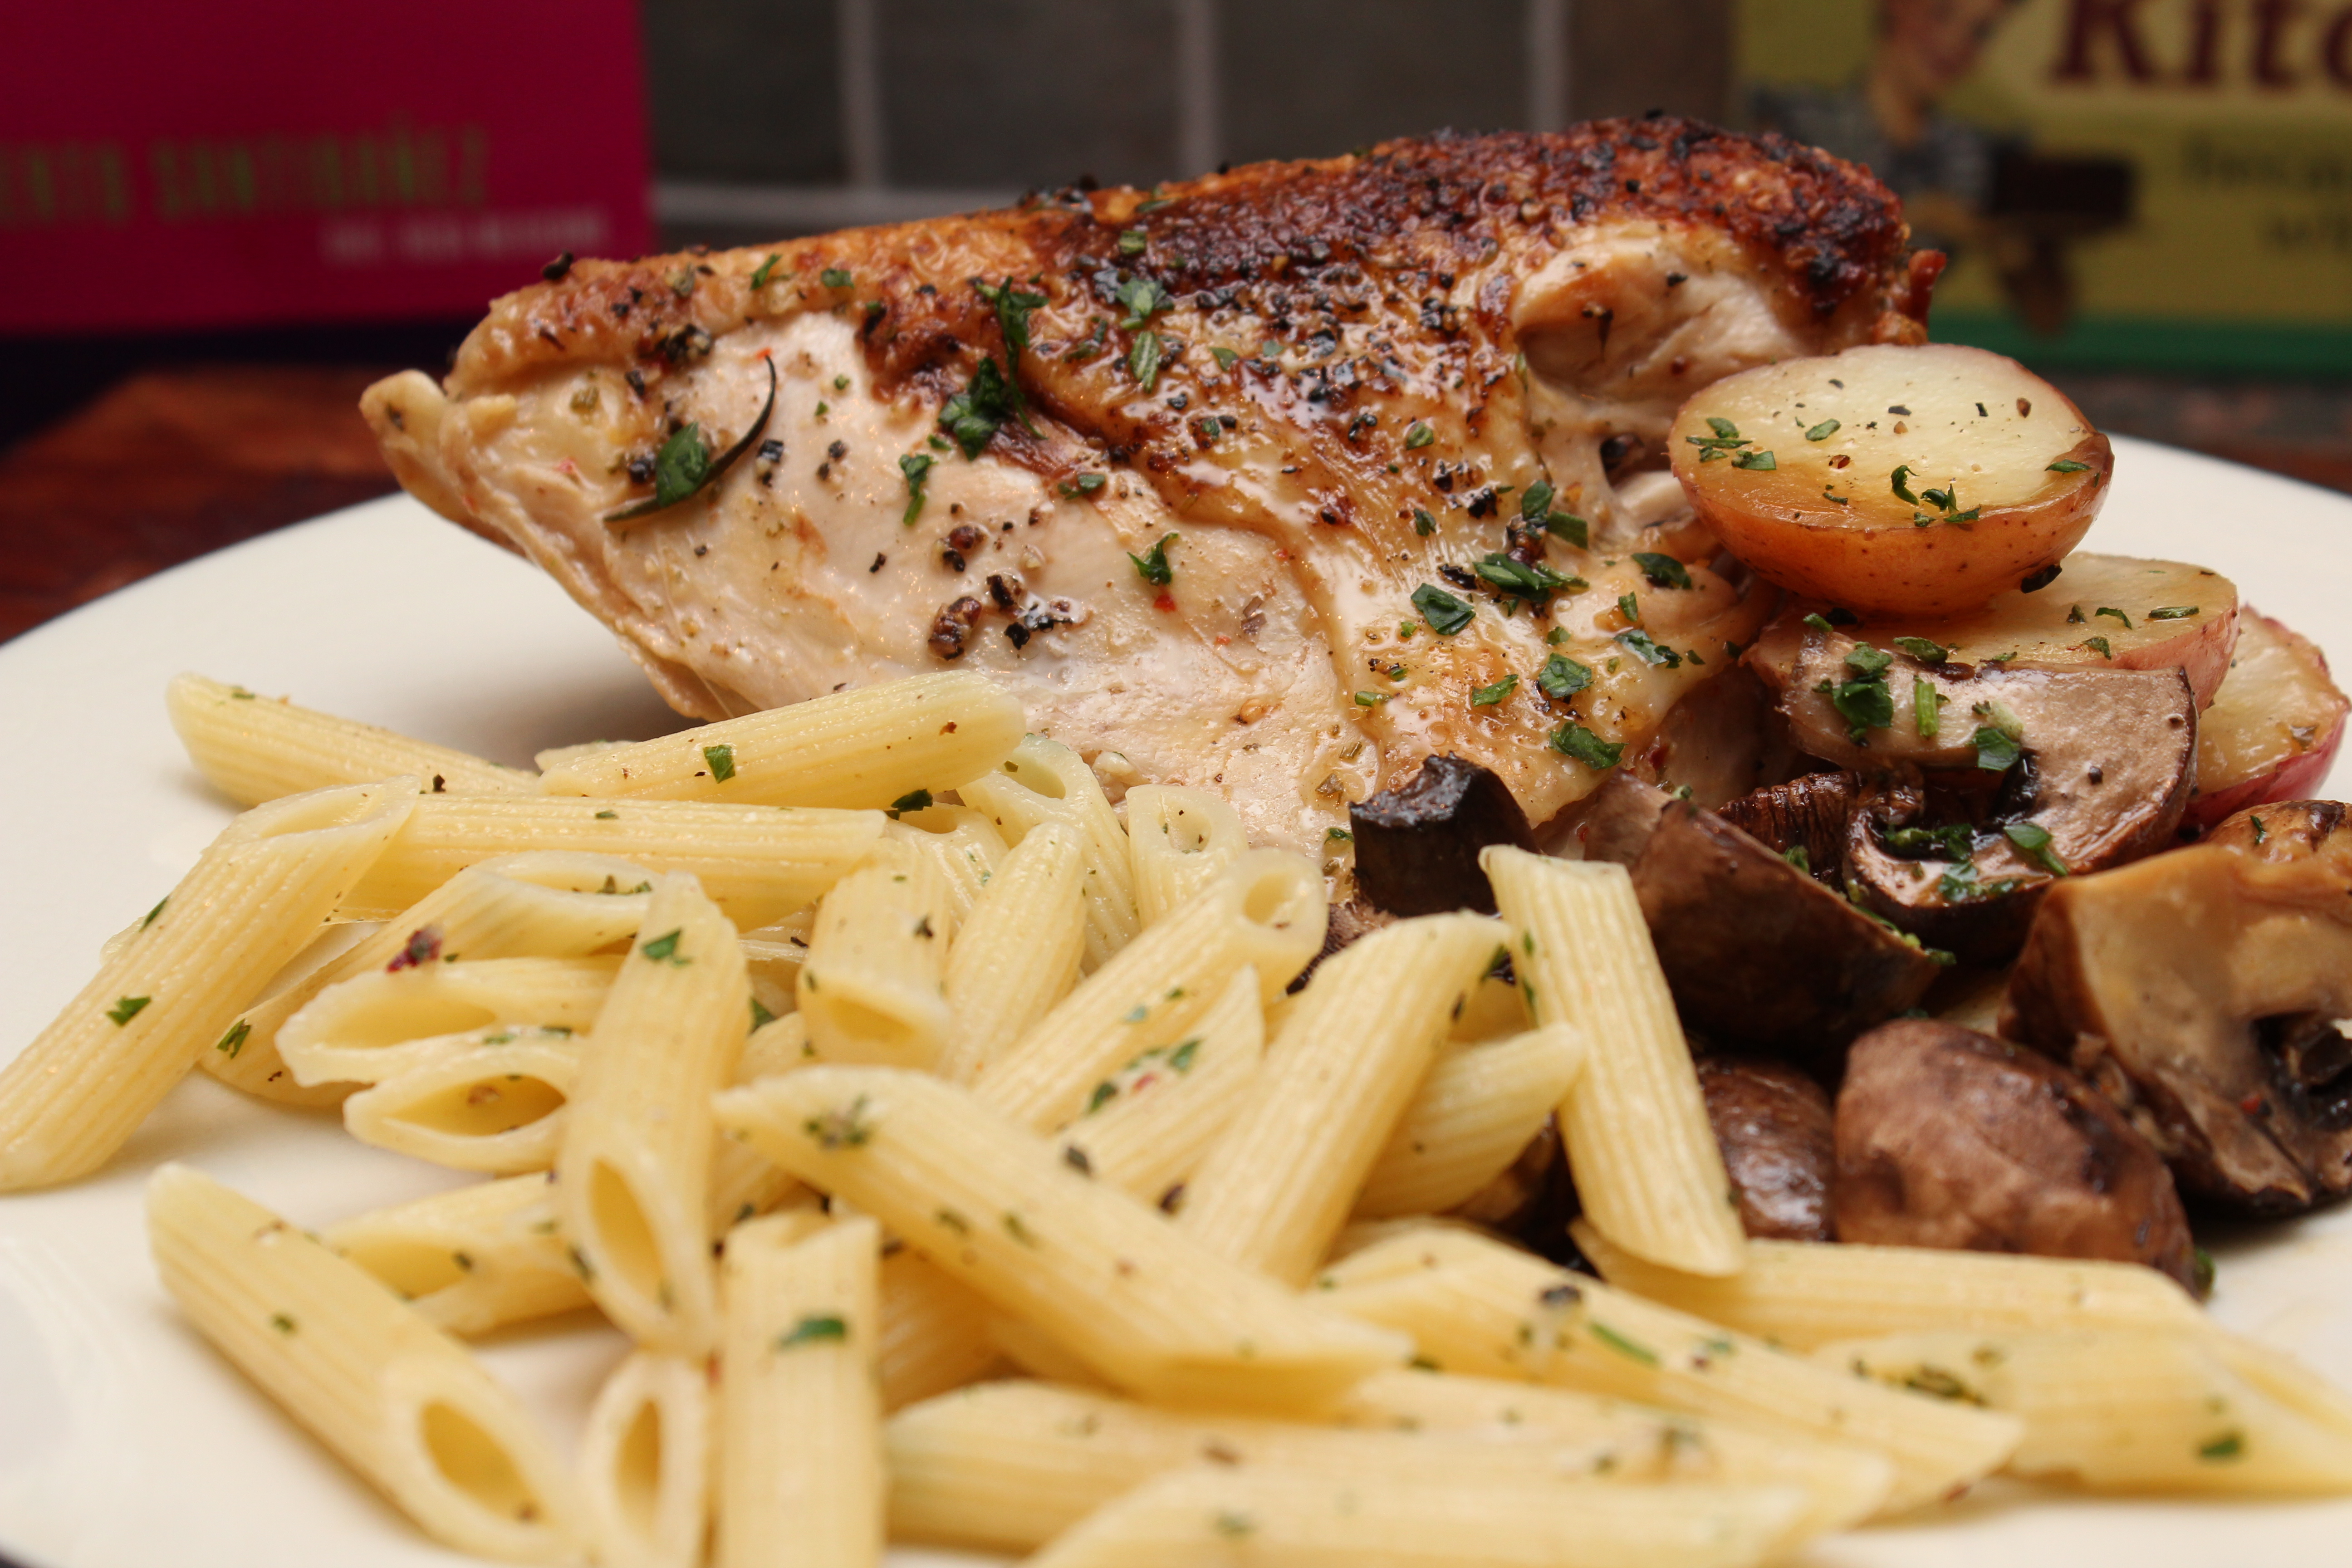 Skillet roasted chicken with lemon herb pasta sarahs musical skillet roasted chicken with lemon herb pasta ccuart Gallery